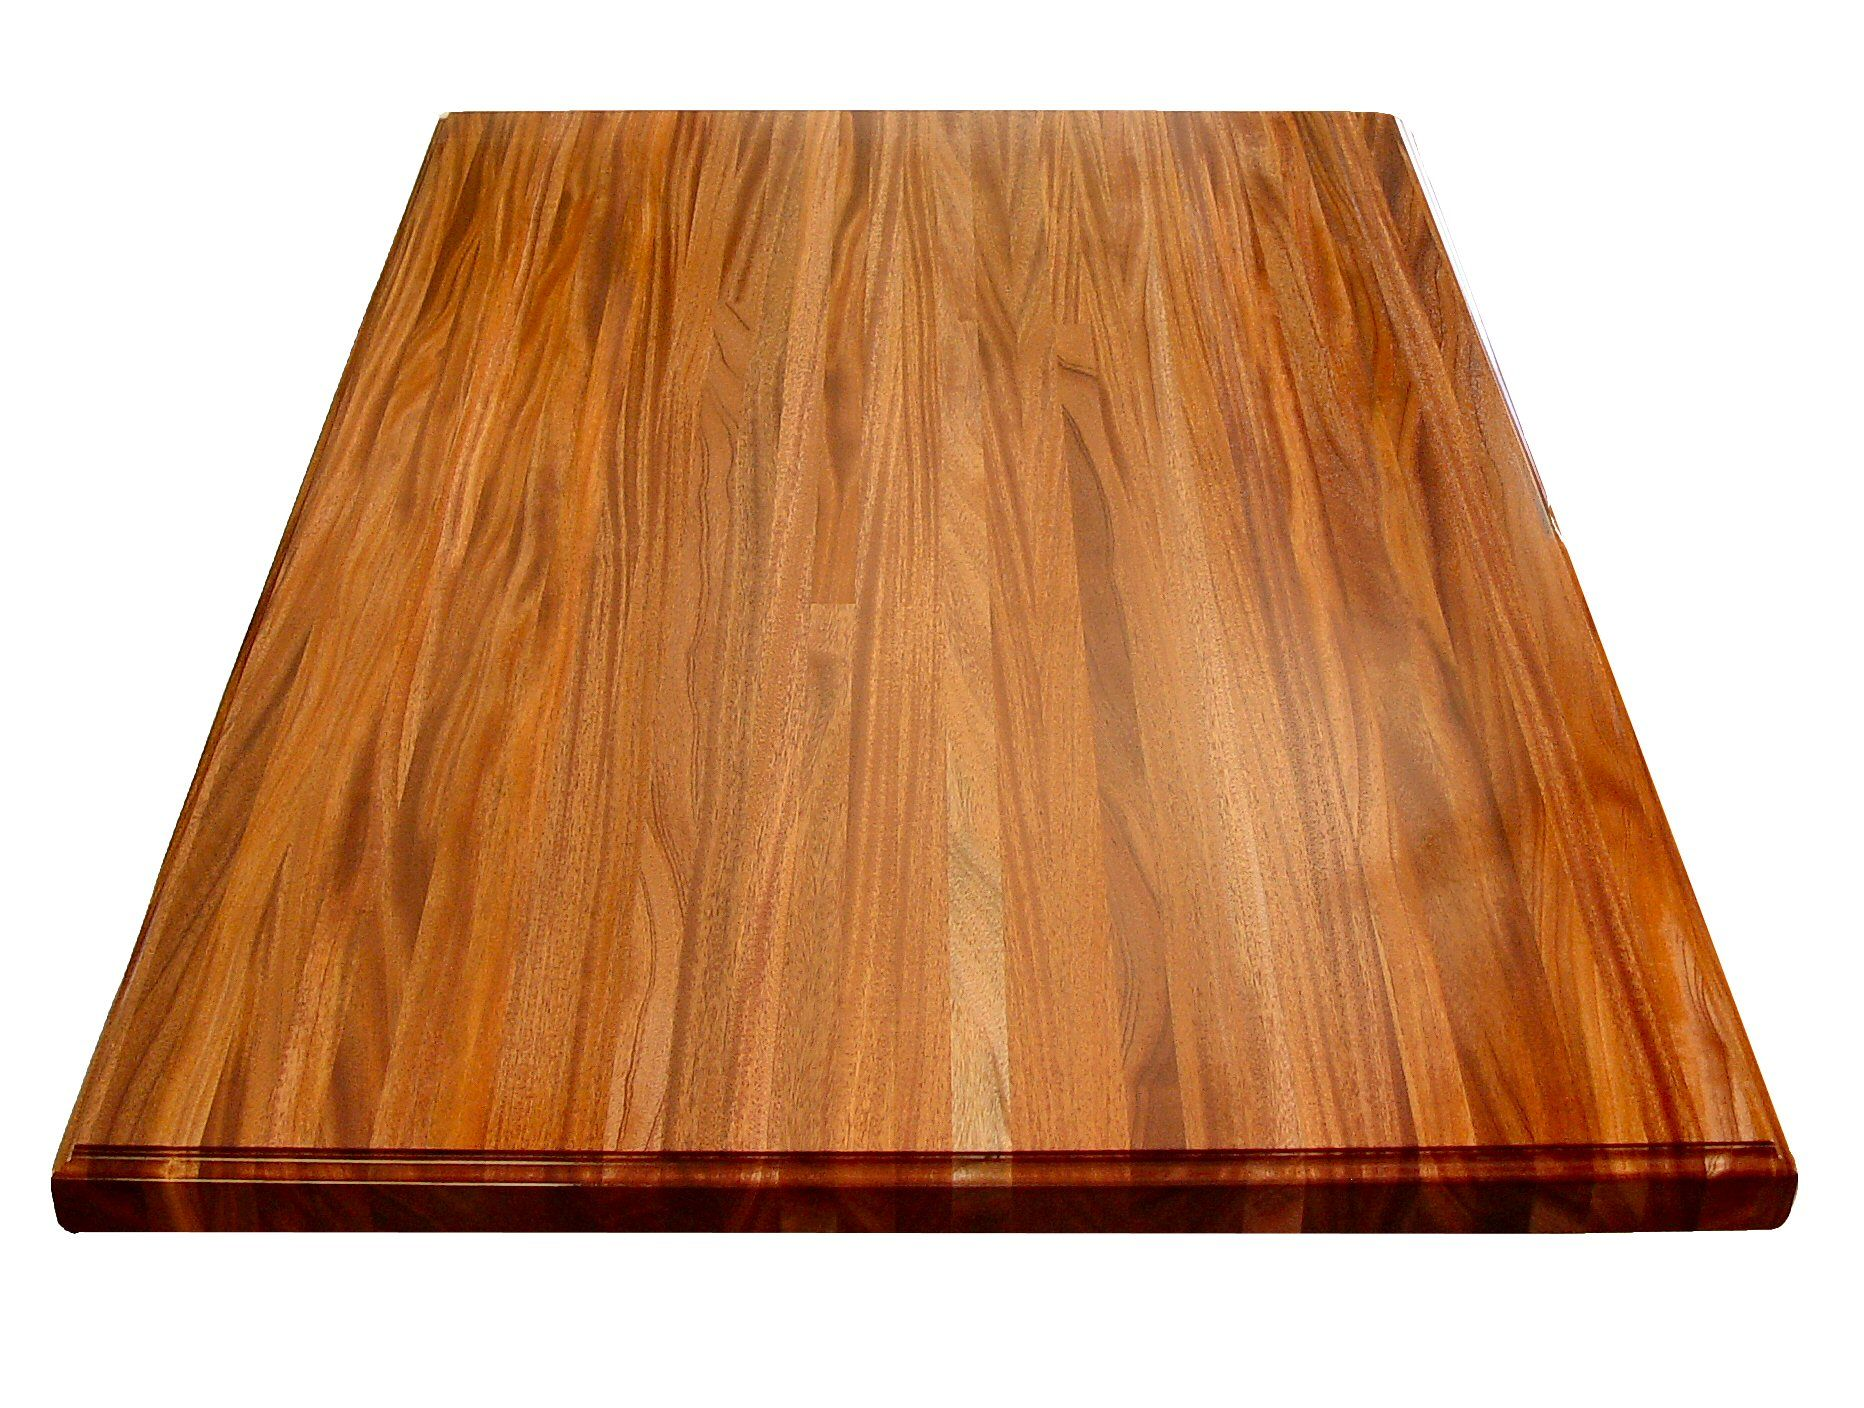 African mahogany wood countertop photo gallery by devos